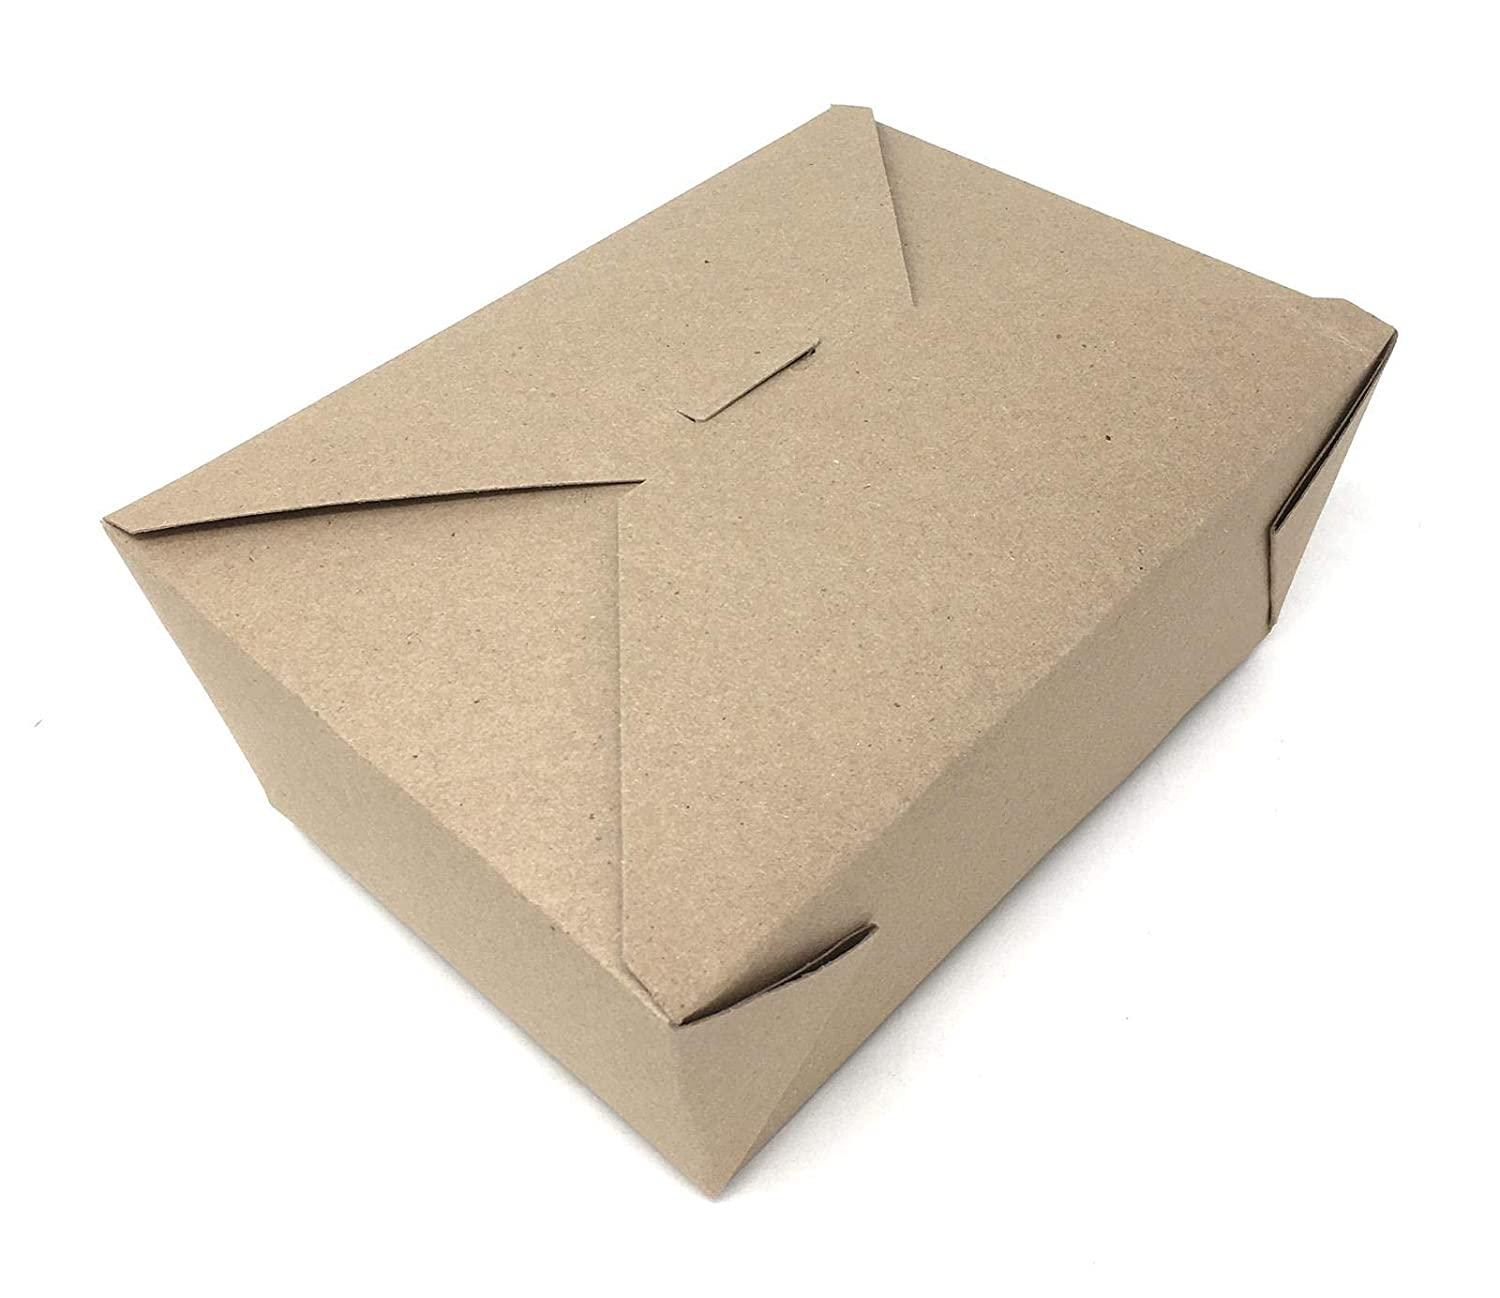 Mr Miracle Mega Kraft Take Out Boxes, 112 Ounce. Pack 20. Microwaveable. Leak and Grease Resistant. Recyclable Lunch Box/to Go Containers. Made from Eco Friendly Brown Kraft Paperboard